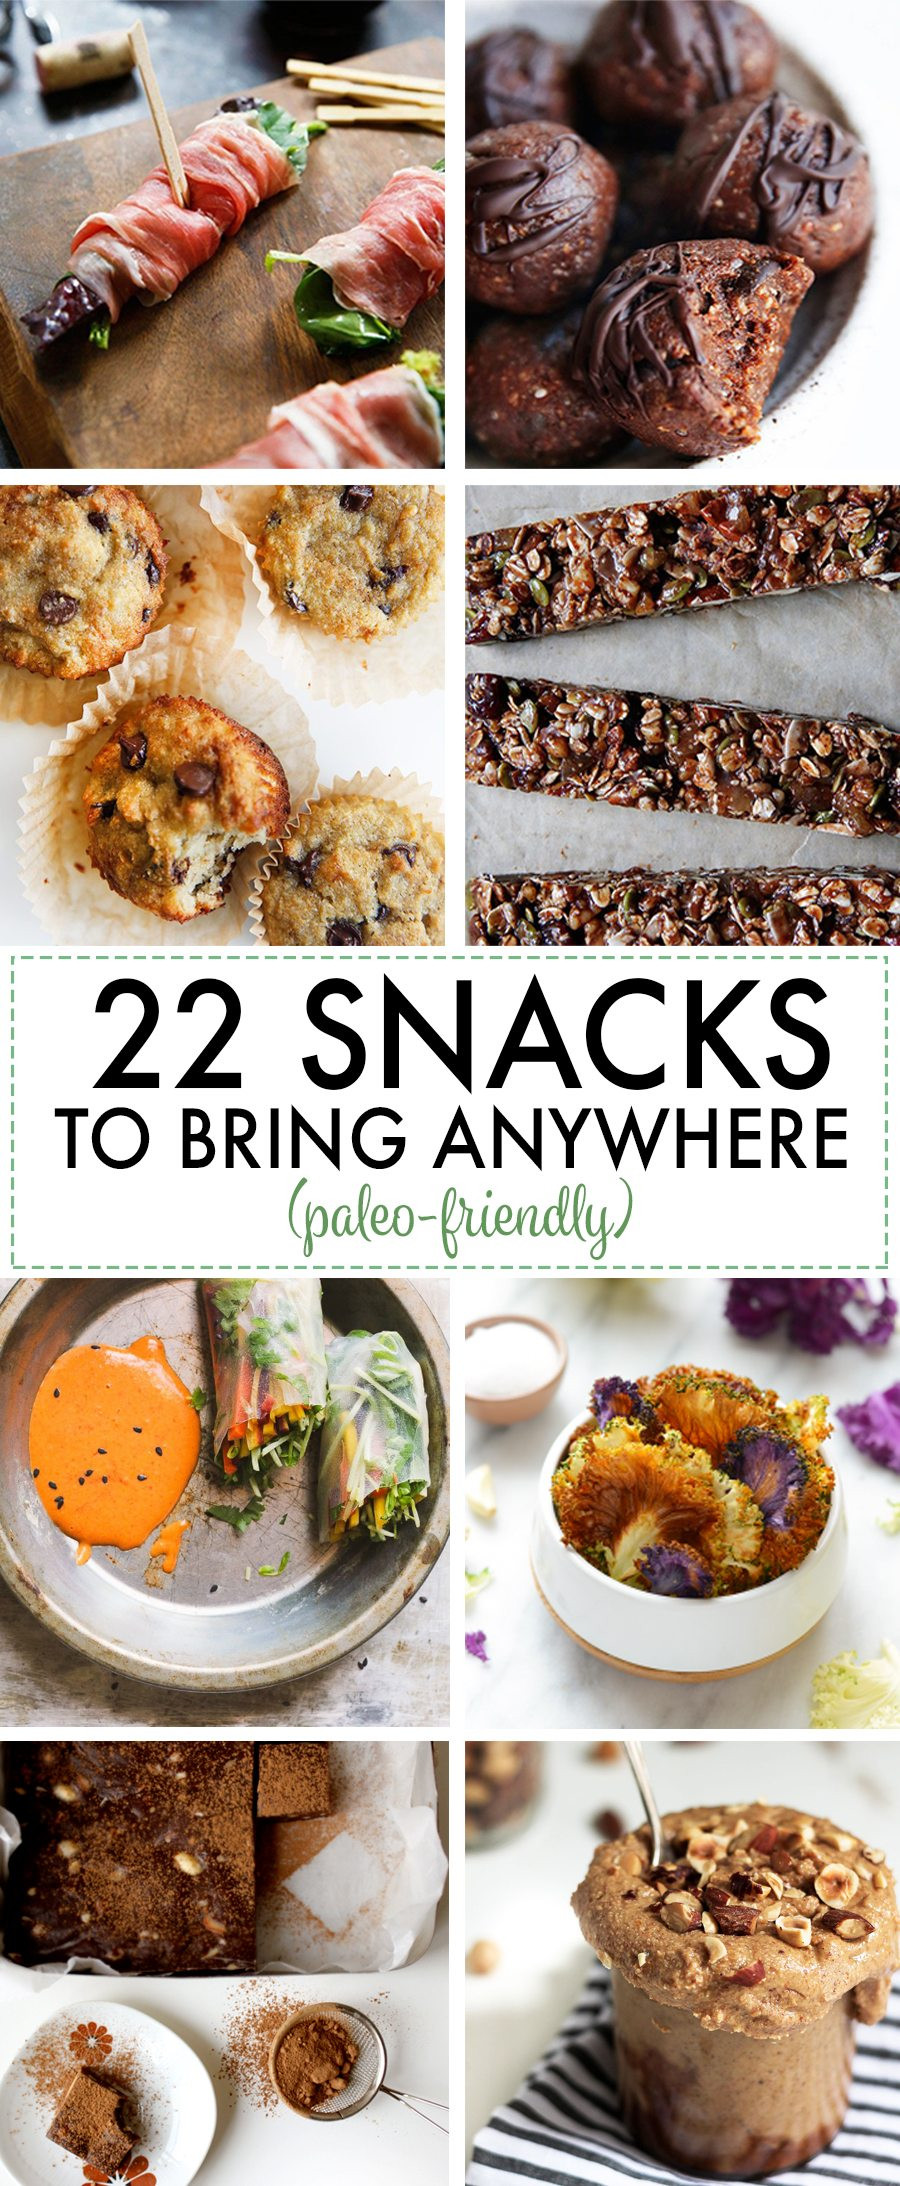 Healthy Paleo Snacks  22 Paleo friendly Snack Recipes You Can Bring Anywhere